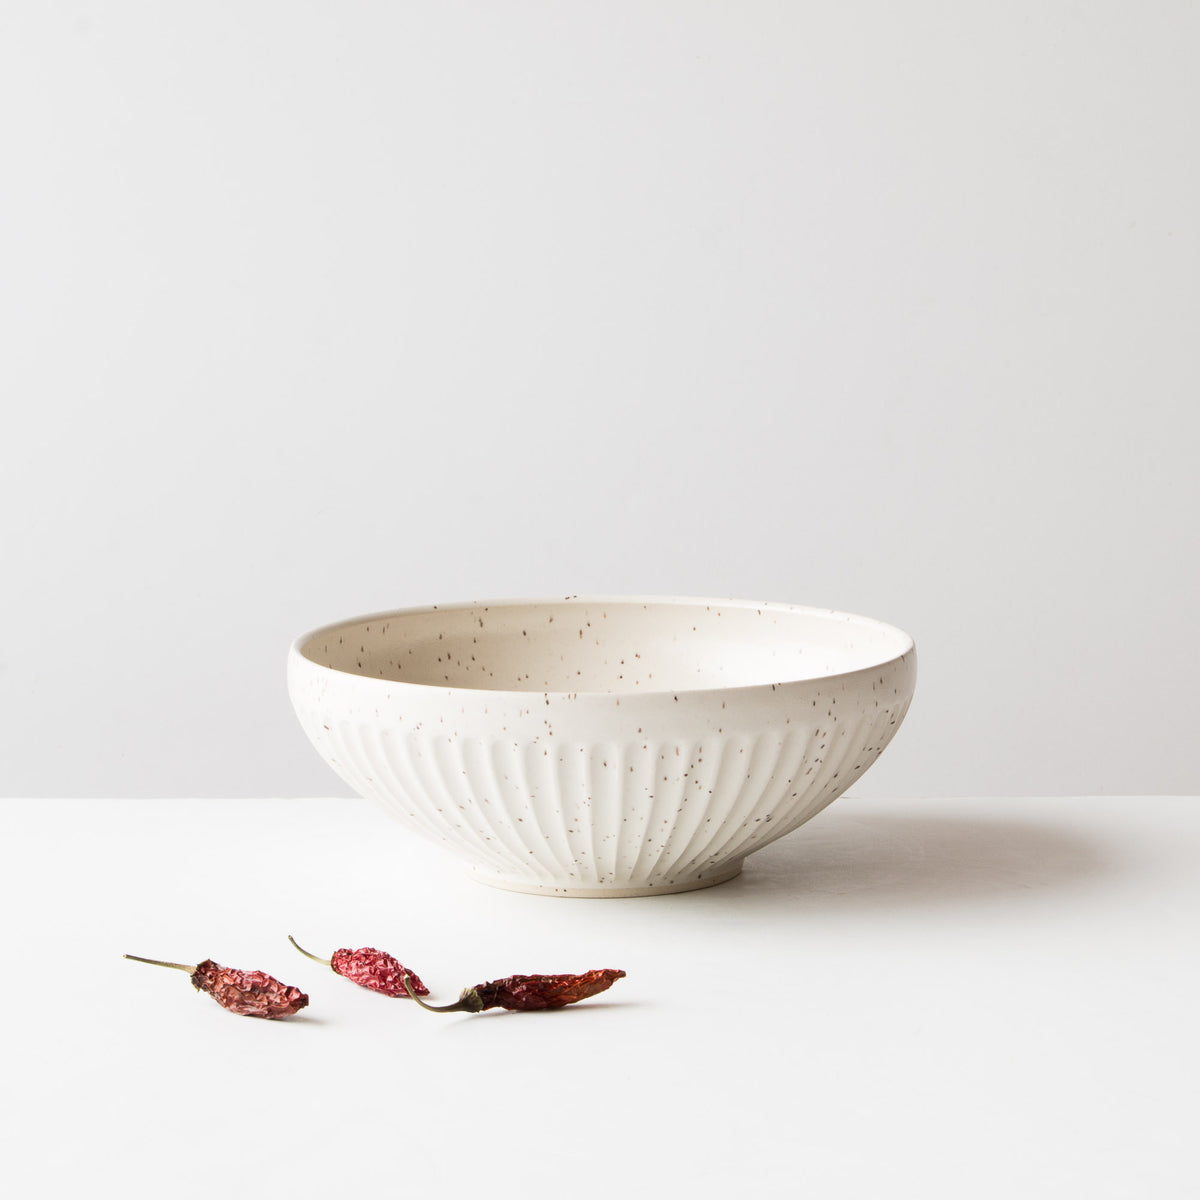 Speckled Off-White - Large Hand Thrown Ceramic Bowl - Groove Pattern - Sold by Chic & Basta